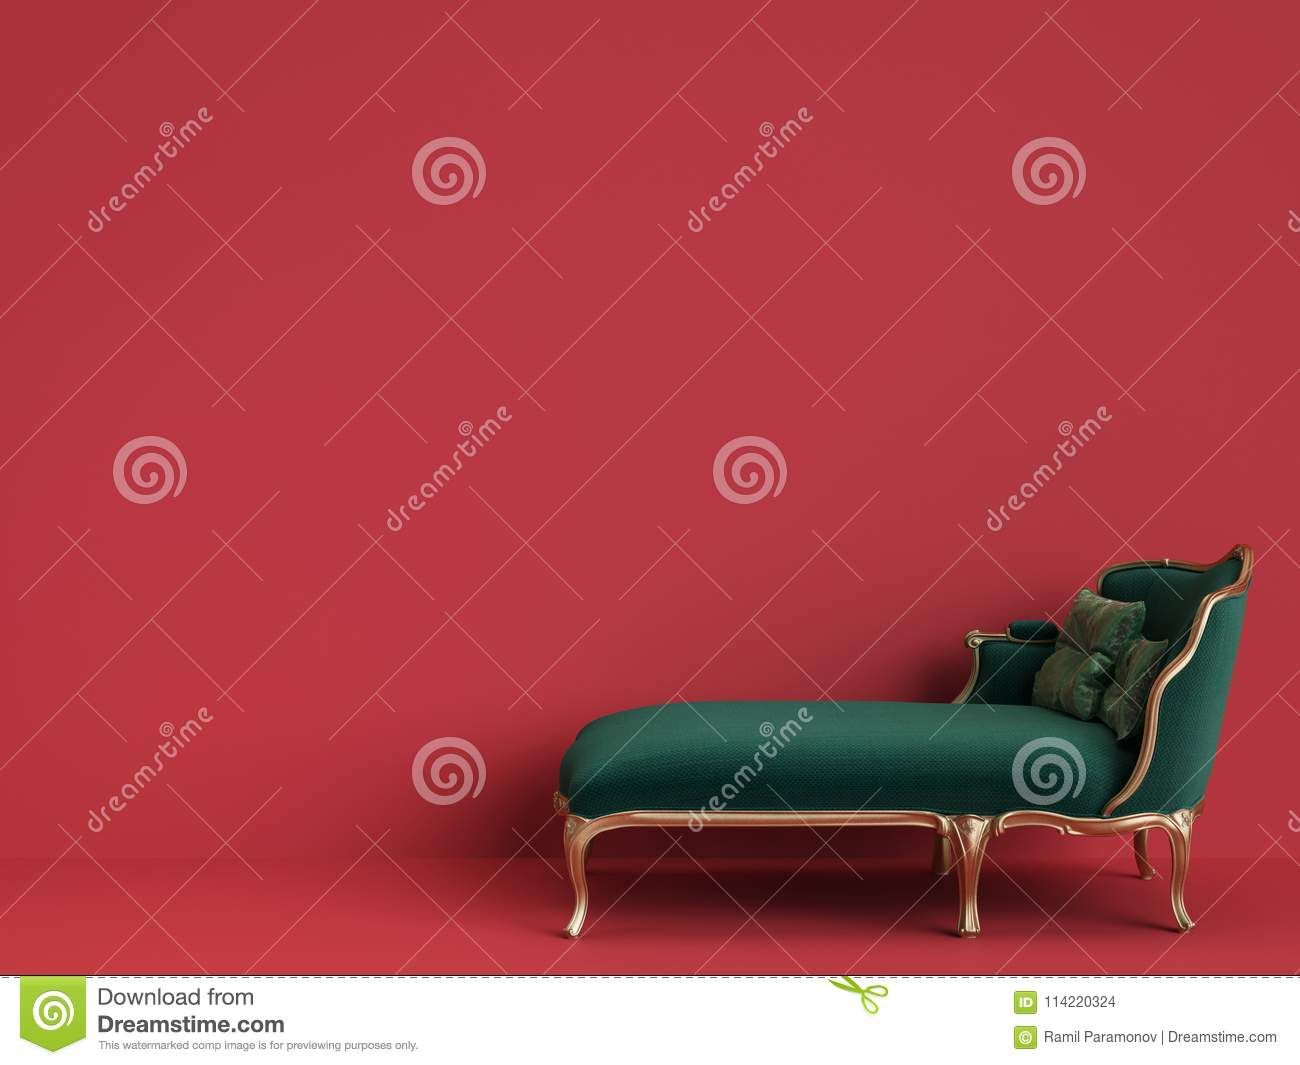 Download Classic Chaise Longue In Emerald Green And Gold On Red Backgroun Stock Illustration